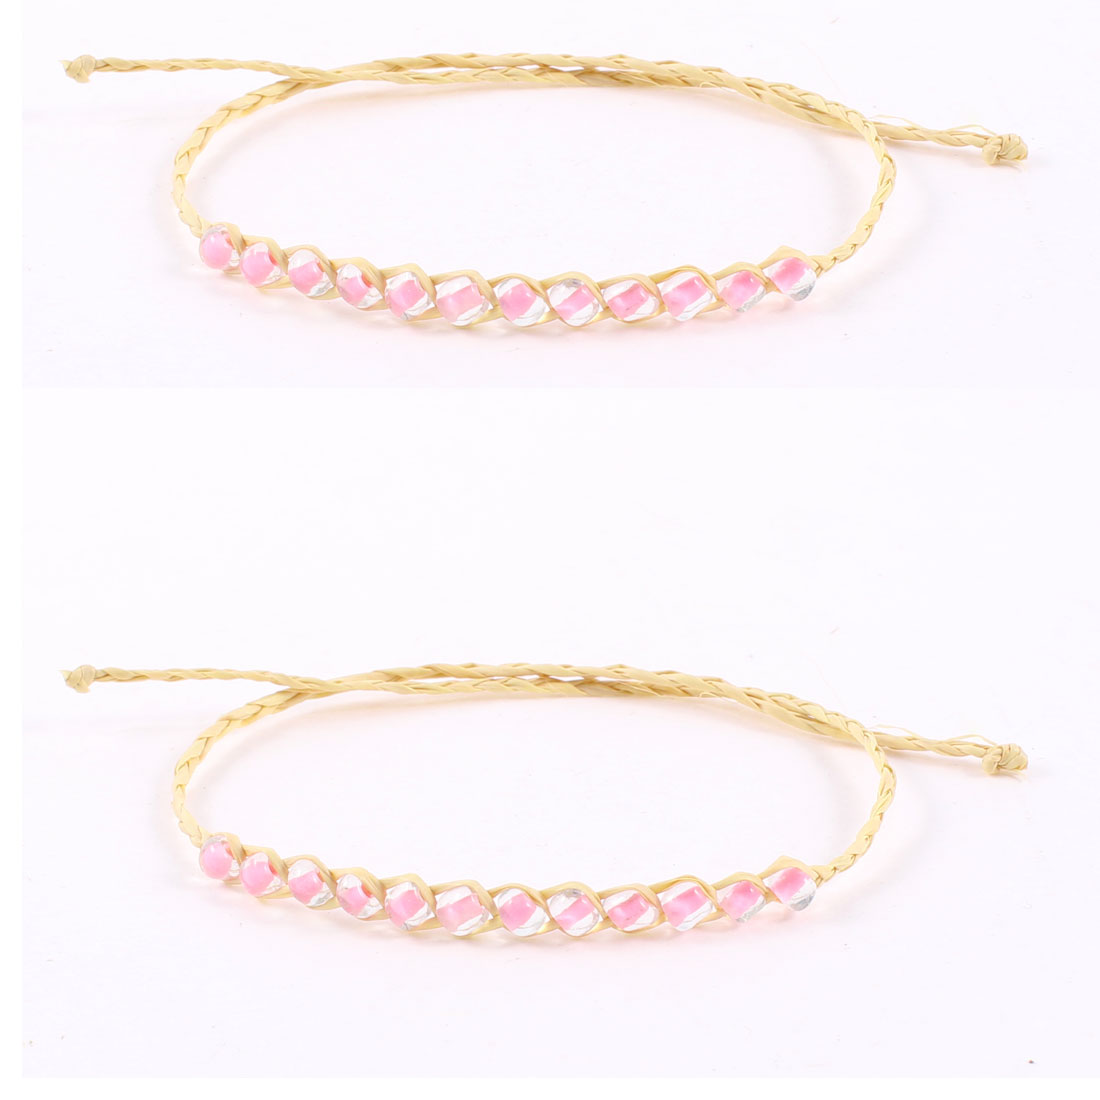 Beige Pink Plastic Beads Decorated Self Tie Straw Bracelet Bangle 2 Pcs